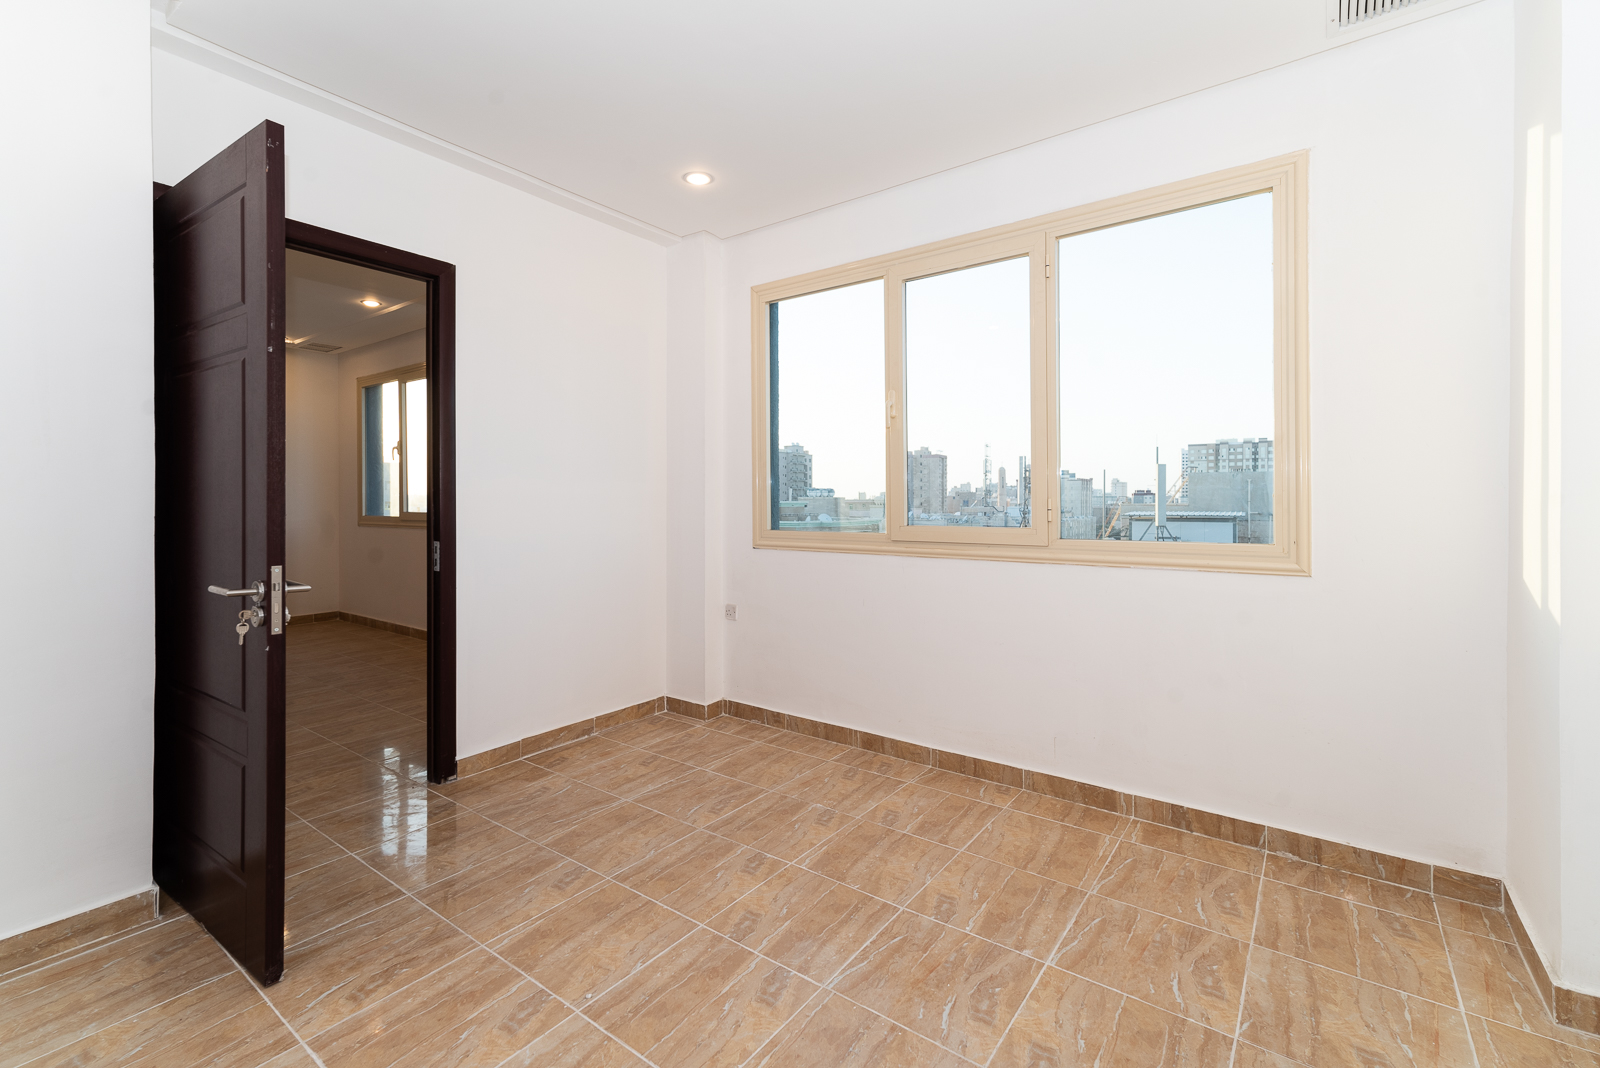 Fintas – new, unfurnished, two bedroom apartments